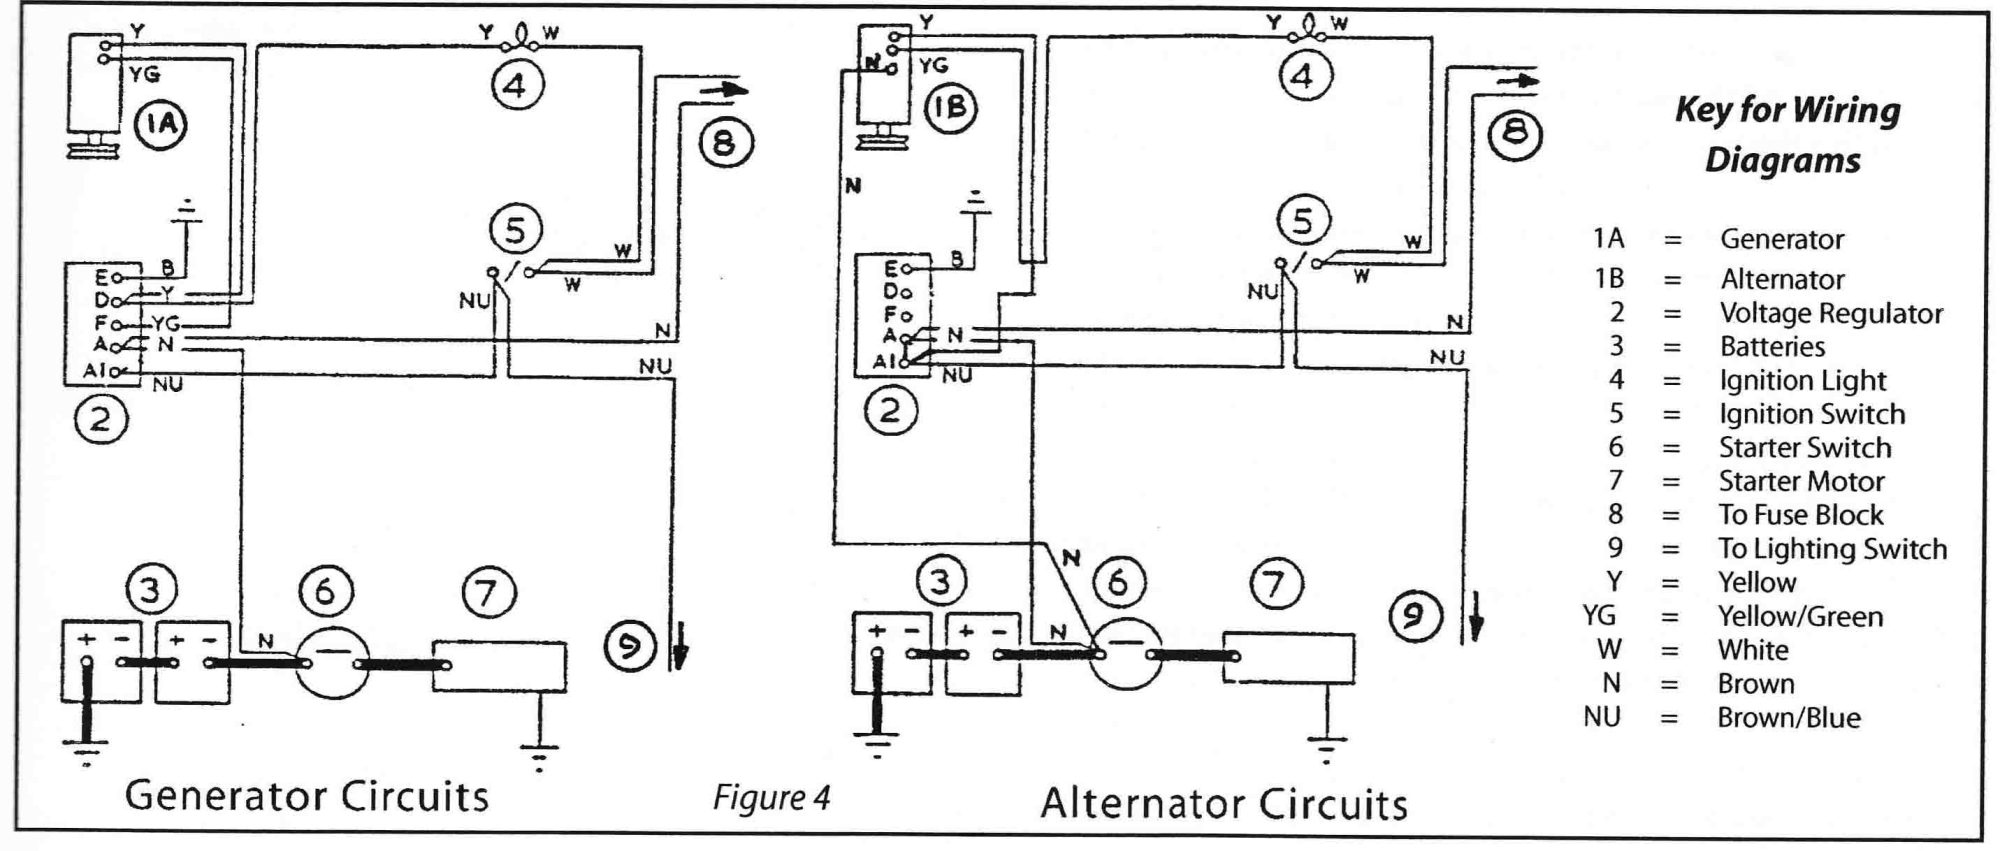 hight resolution of 1960 mga wiring diagram wiring diagrams mga wiring harness 1960 mga wiring diagram simple wiring schema